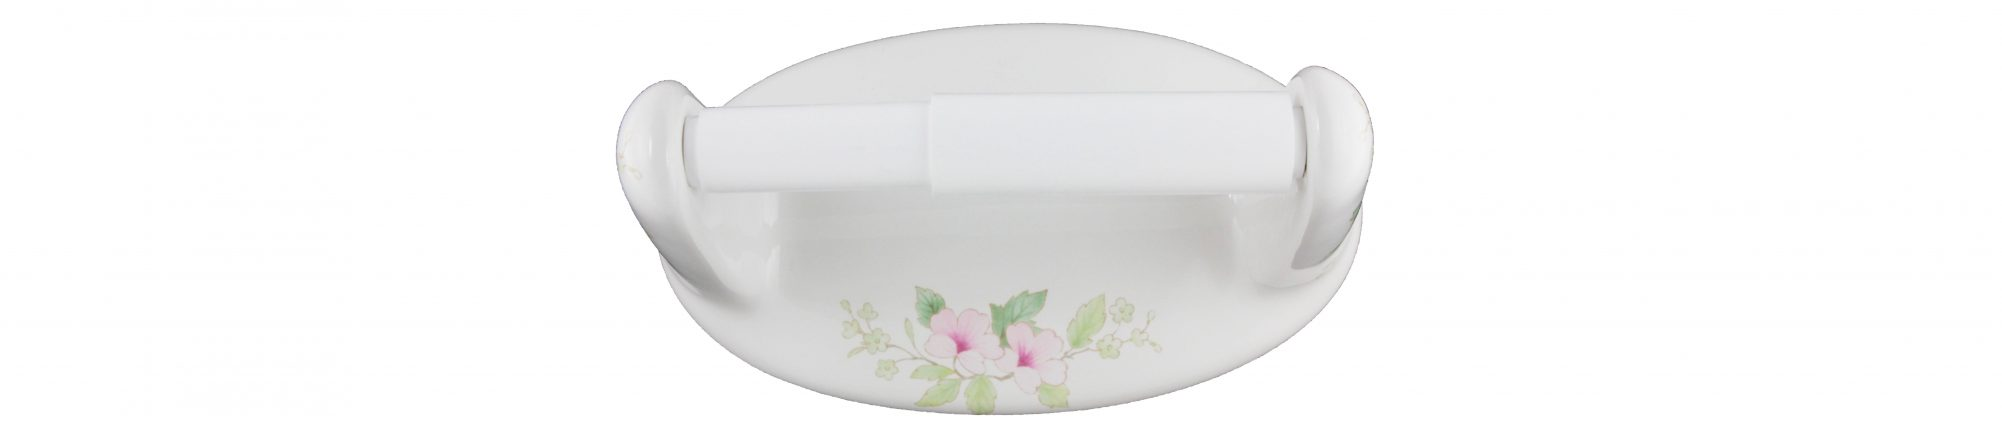 Ceramic Toilet Paper Holders